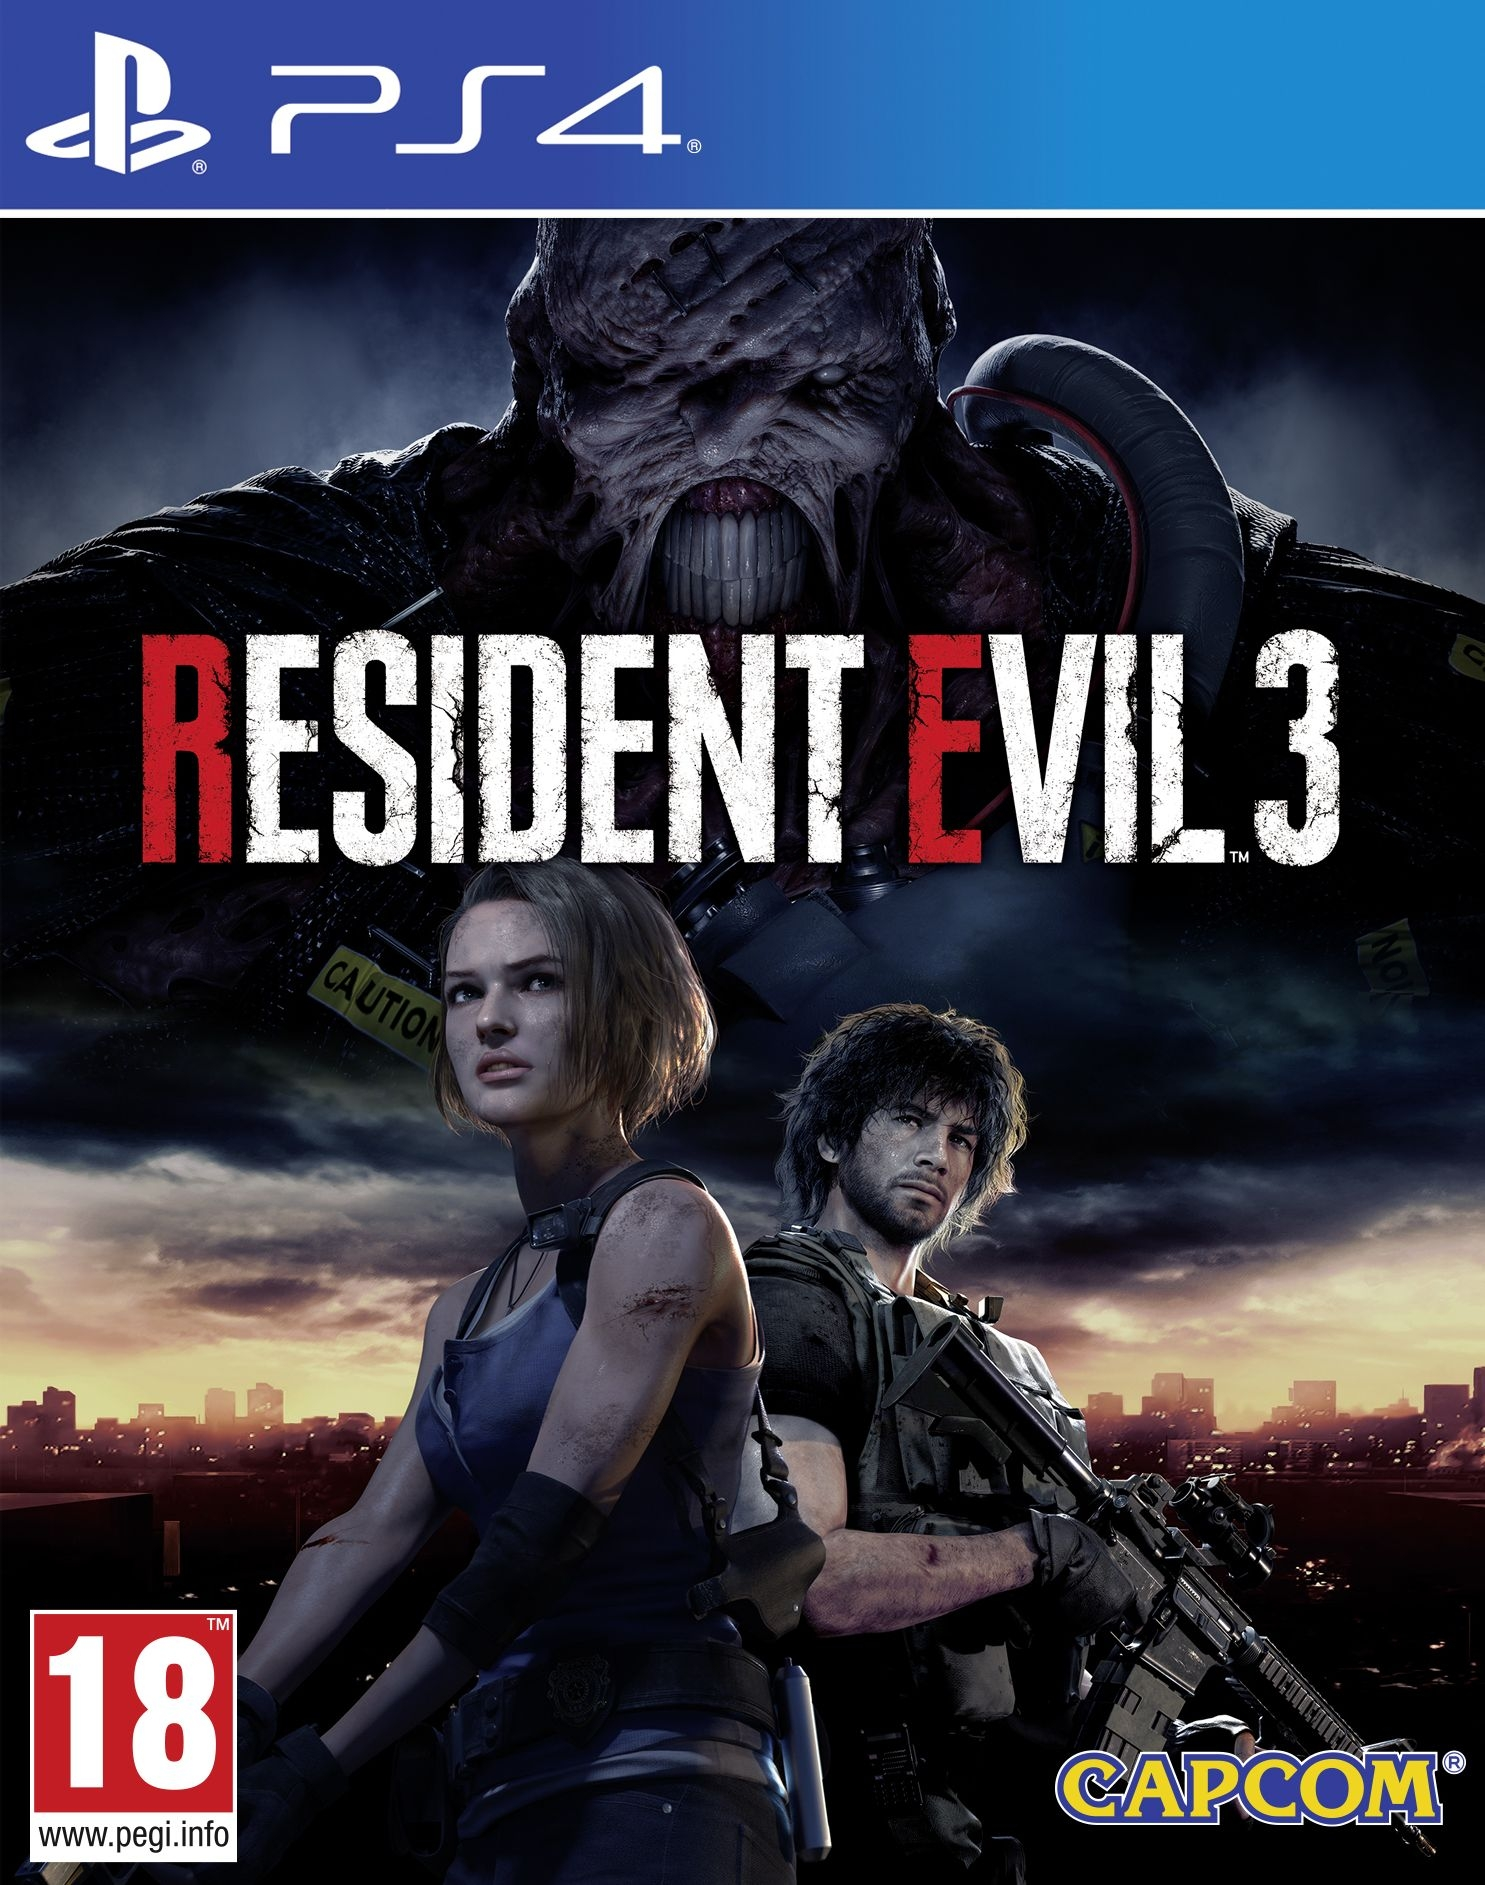 PS4 Resident Evil 3 Collectors Edition